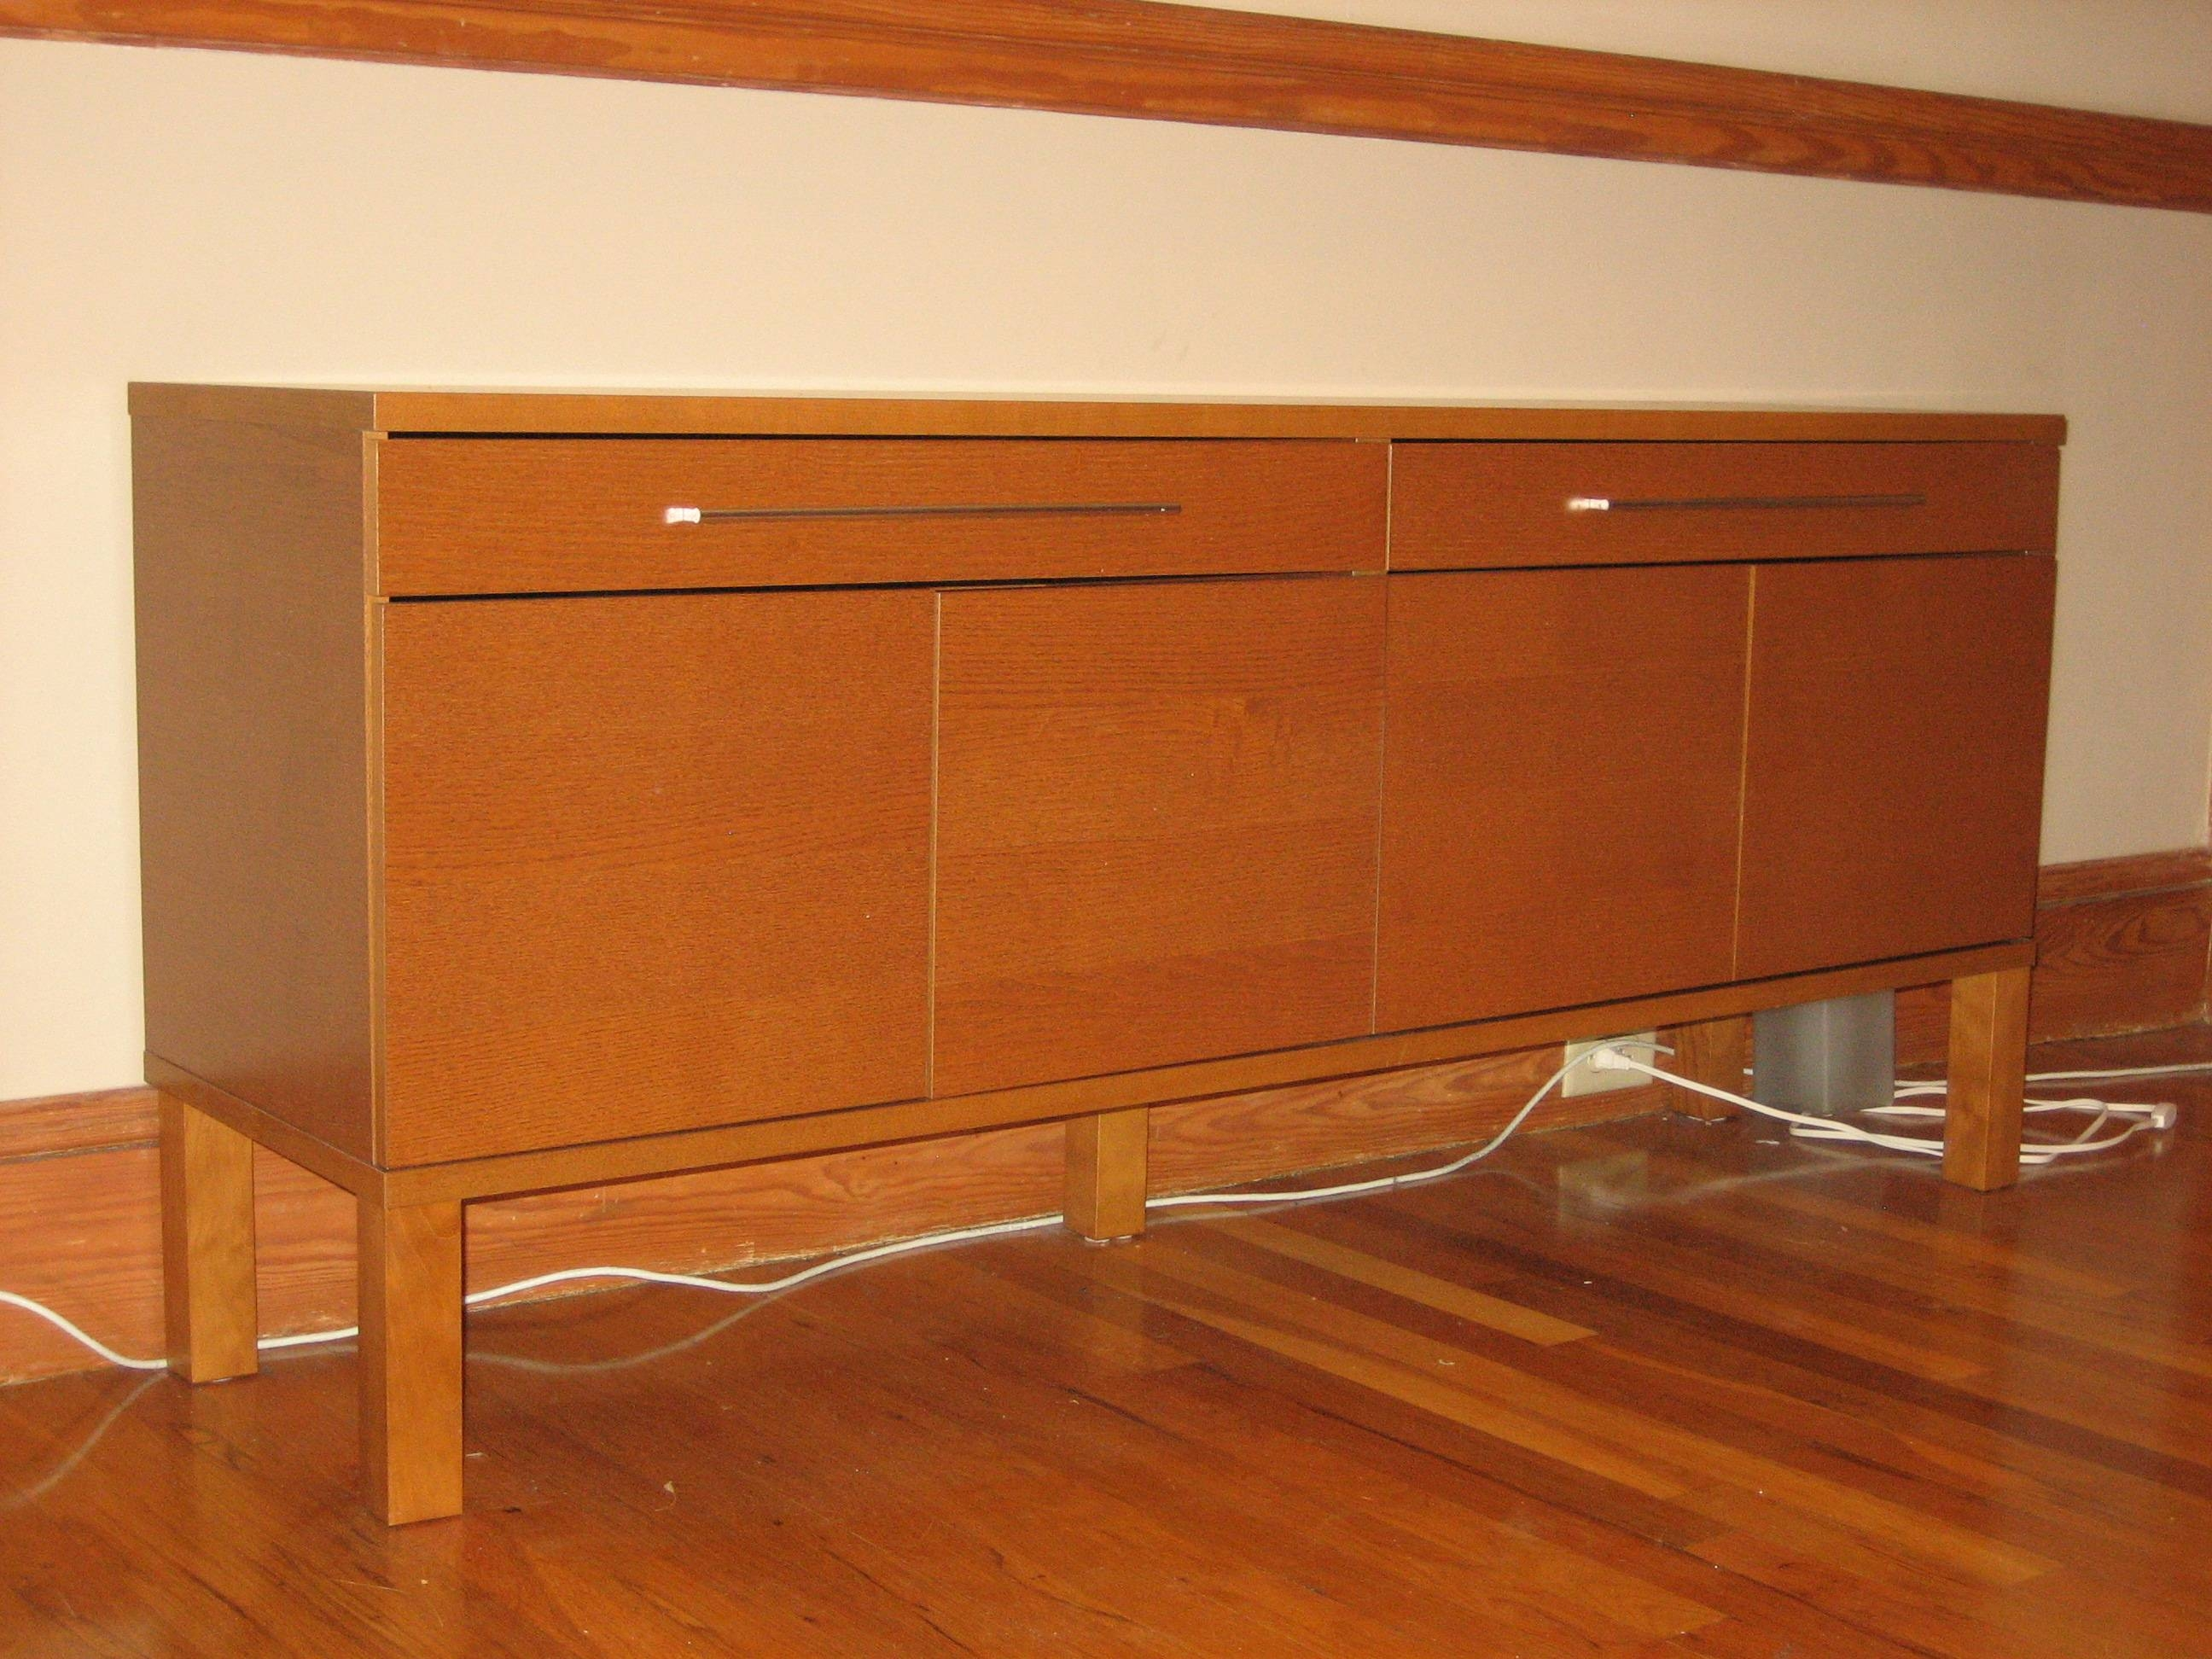 Ikea Bjursta Dining Table And Sideboard Regarding Most Popular Bjursta Sideboards (#3 of 15)